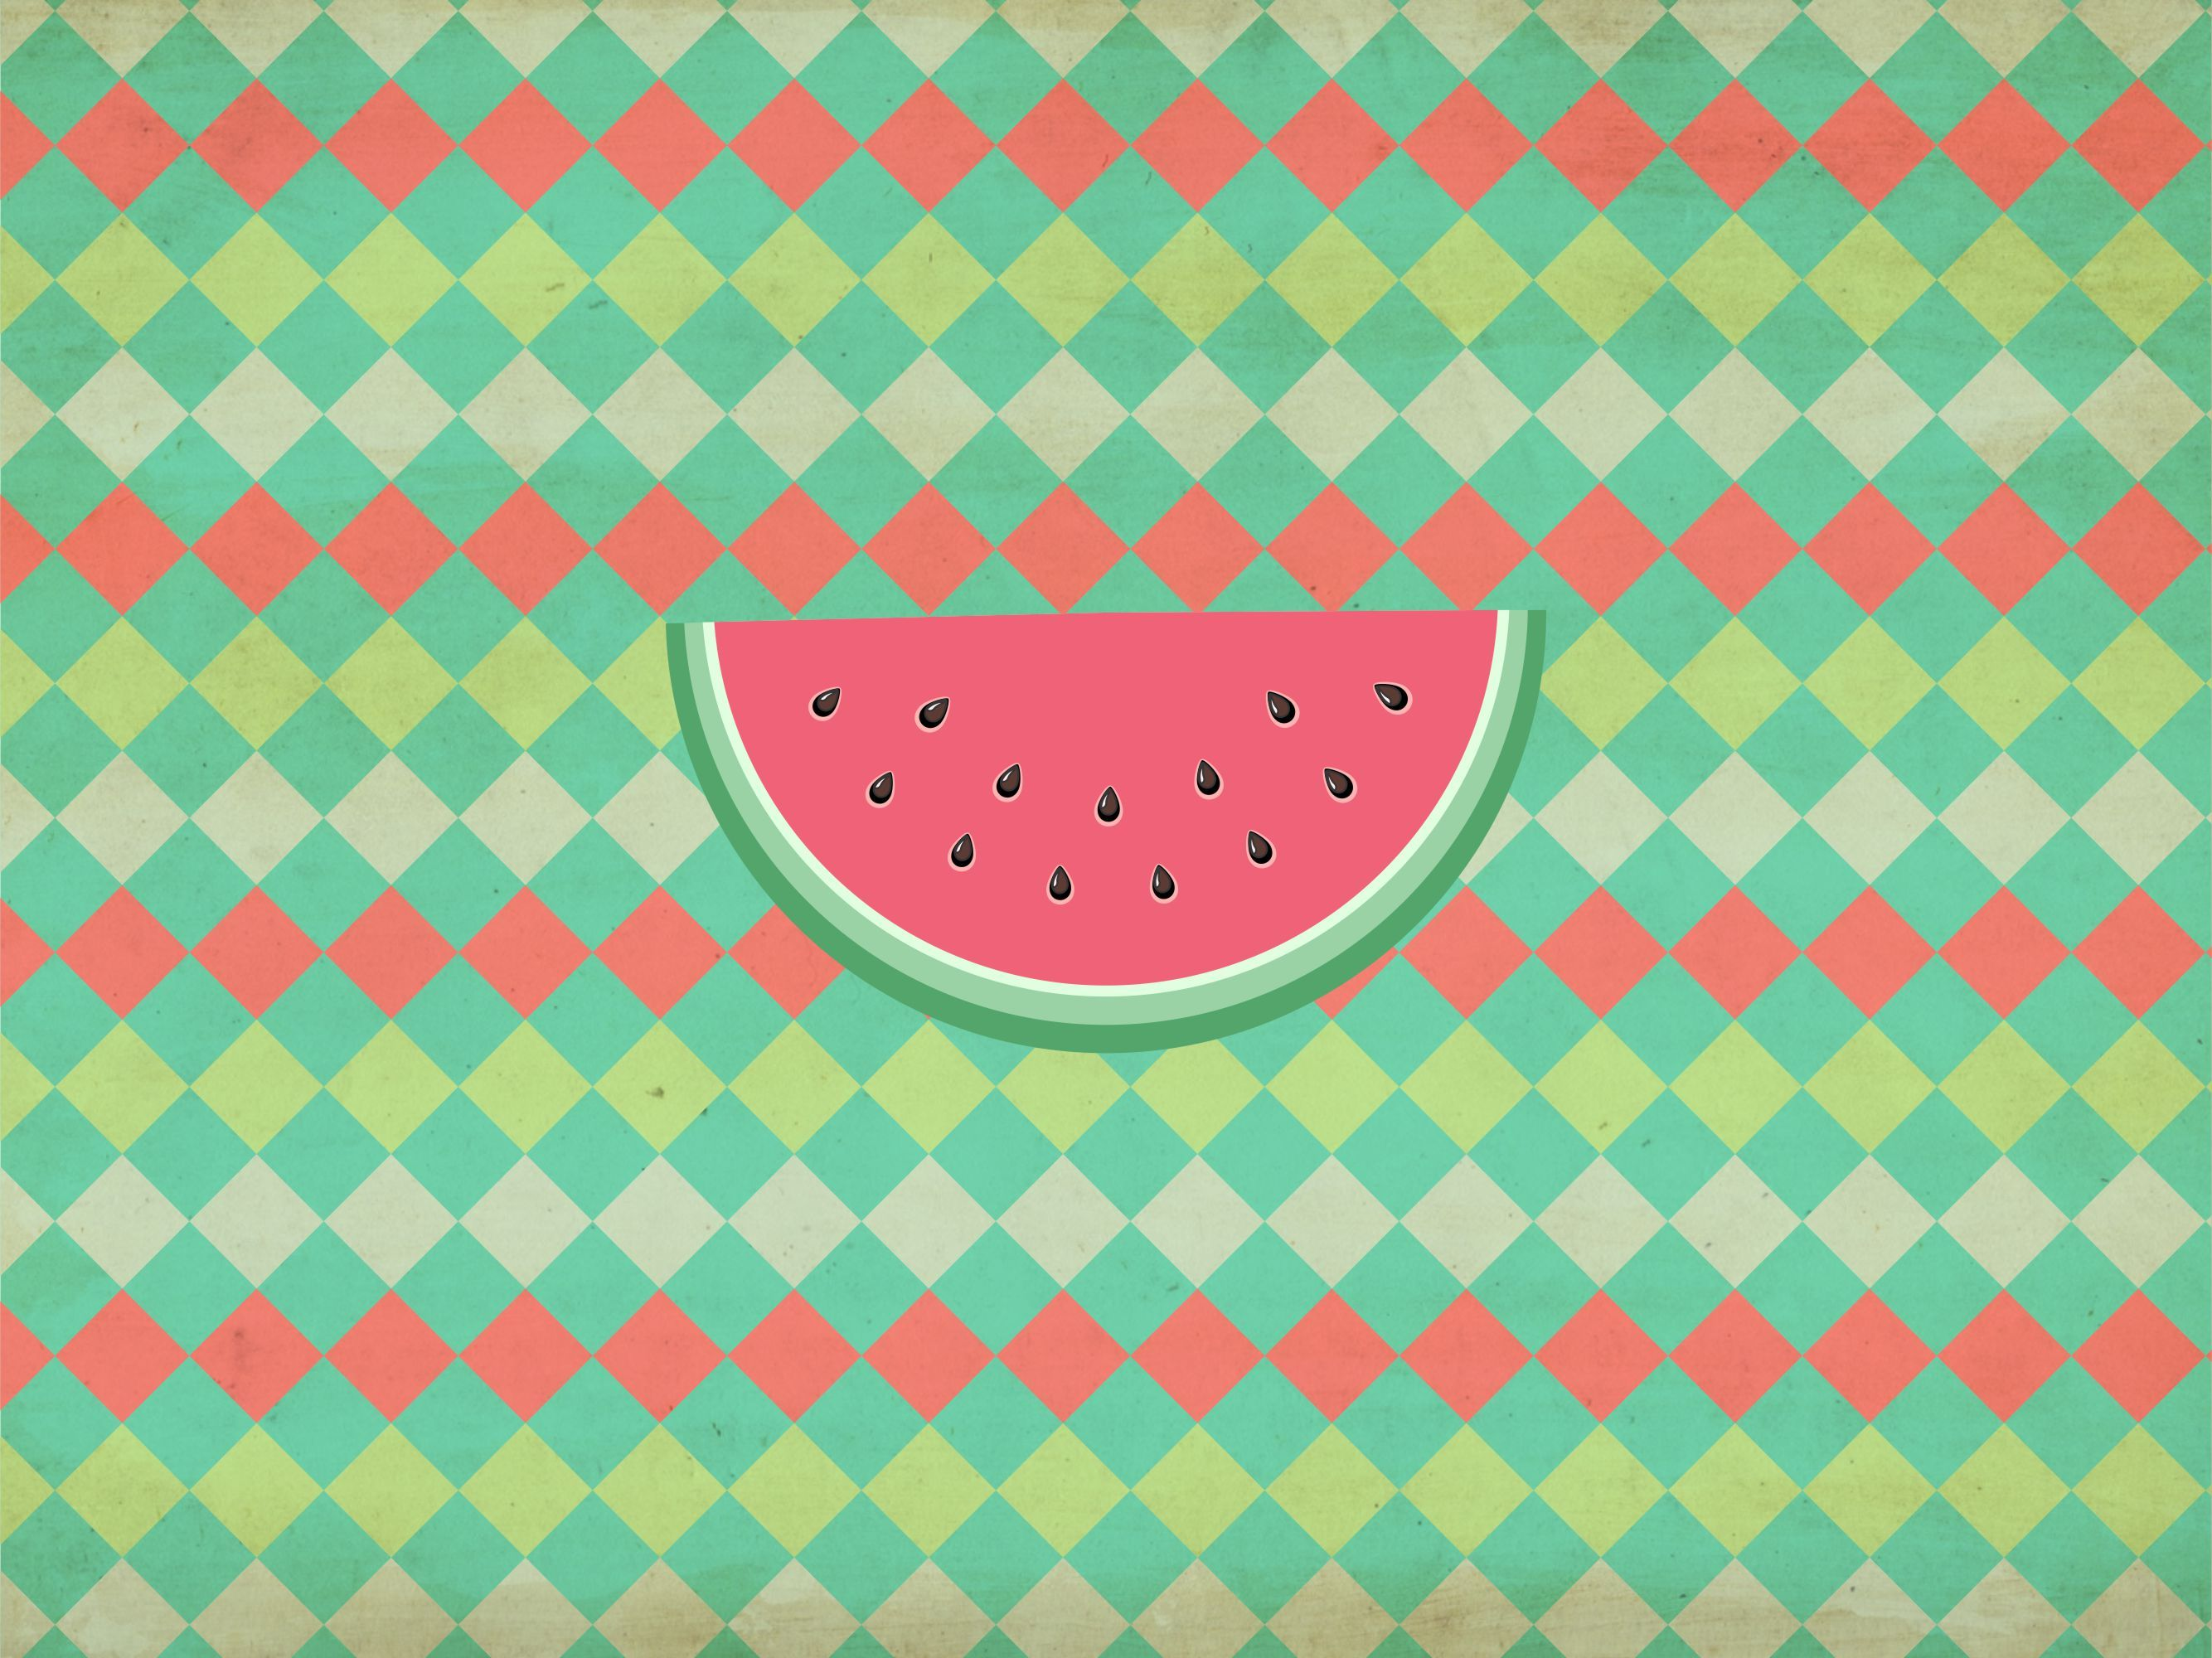 watermelon wallpaper for ipads and tablet so sweet and cute.feel